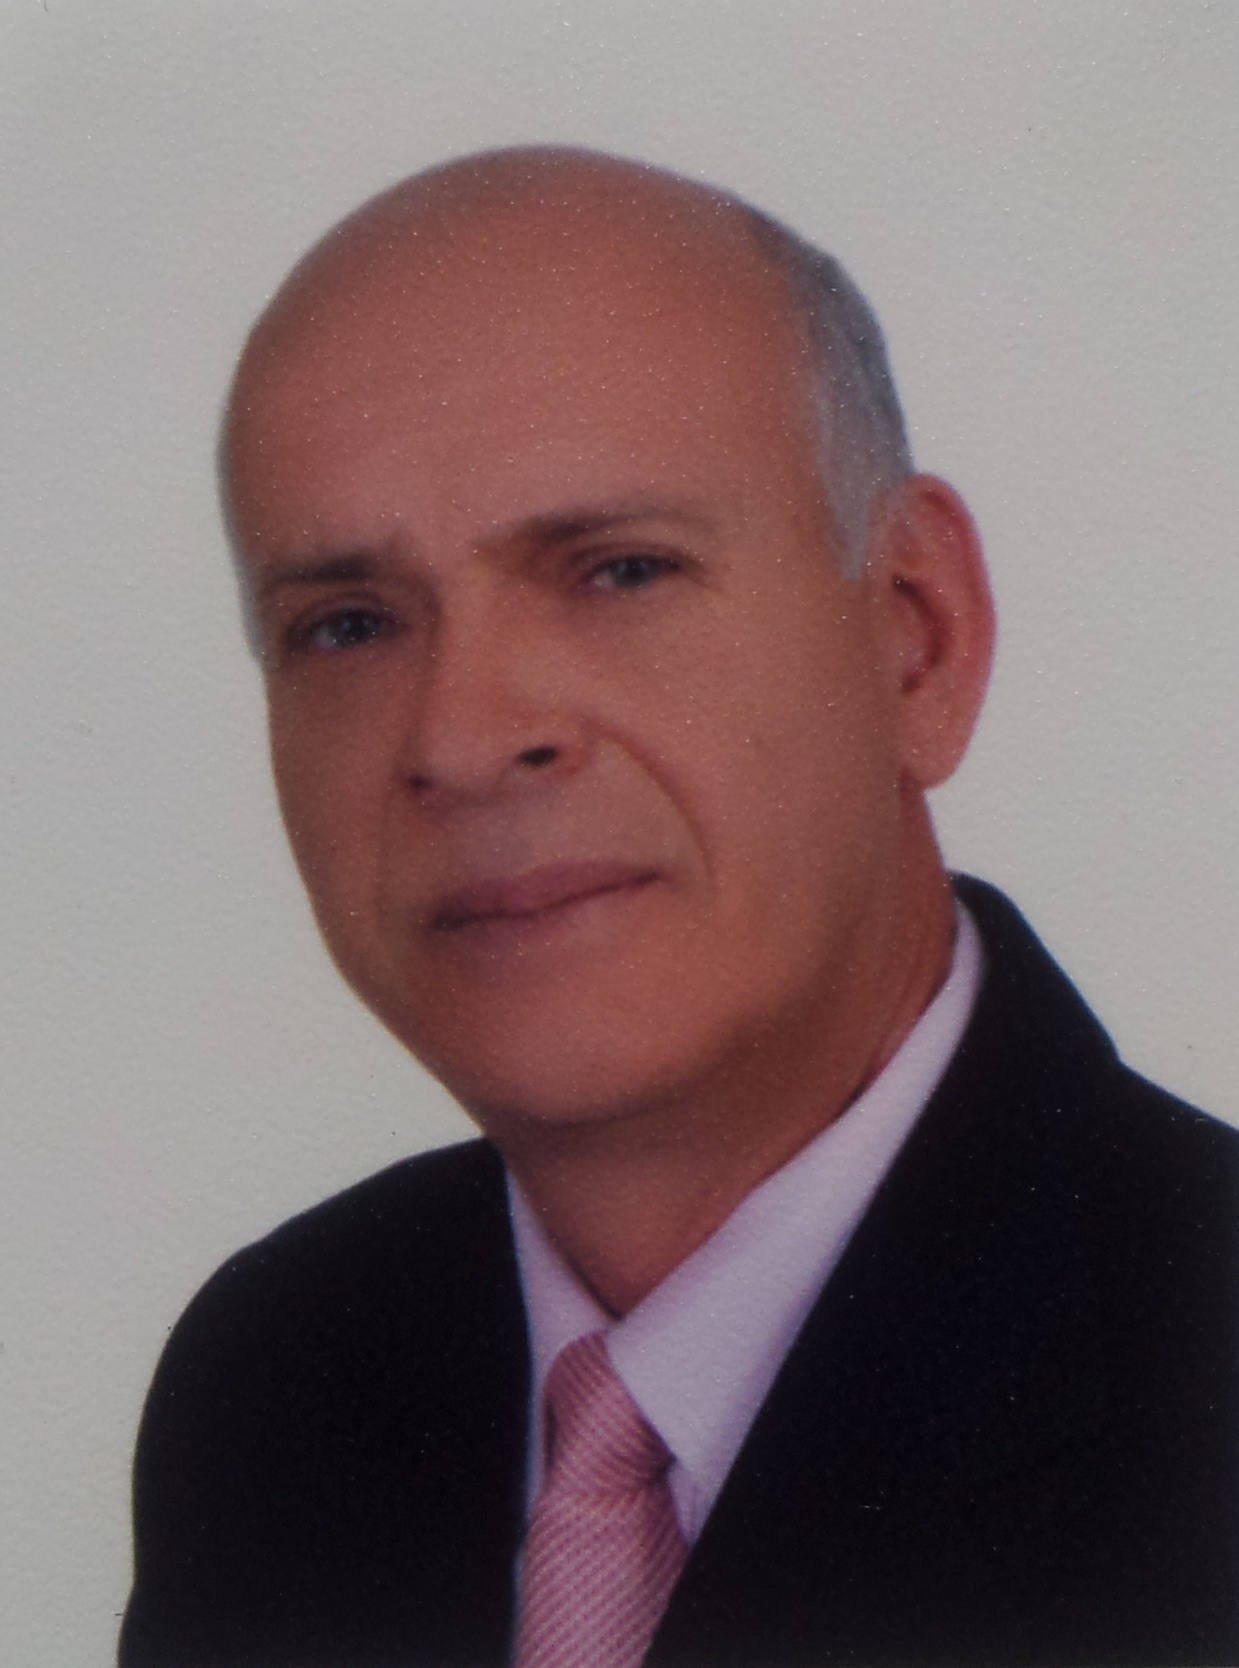 ALBERTO ELIAS ALEMAN ARCOS photo